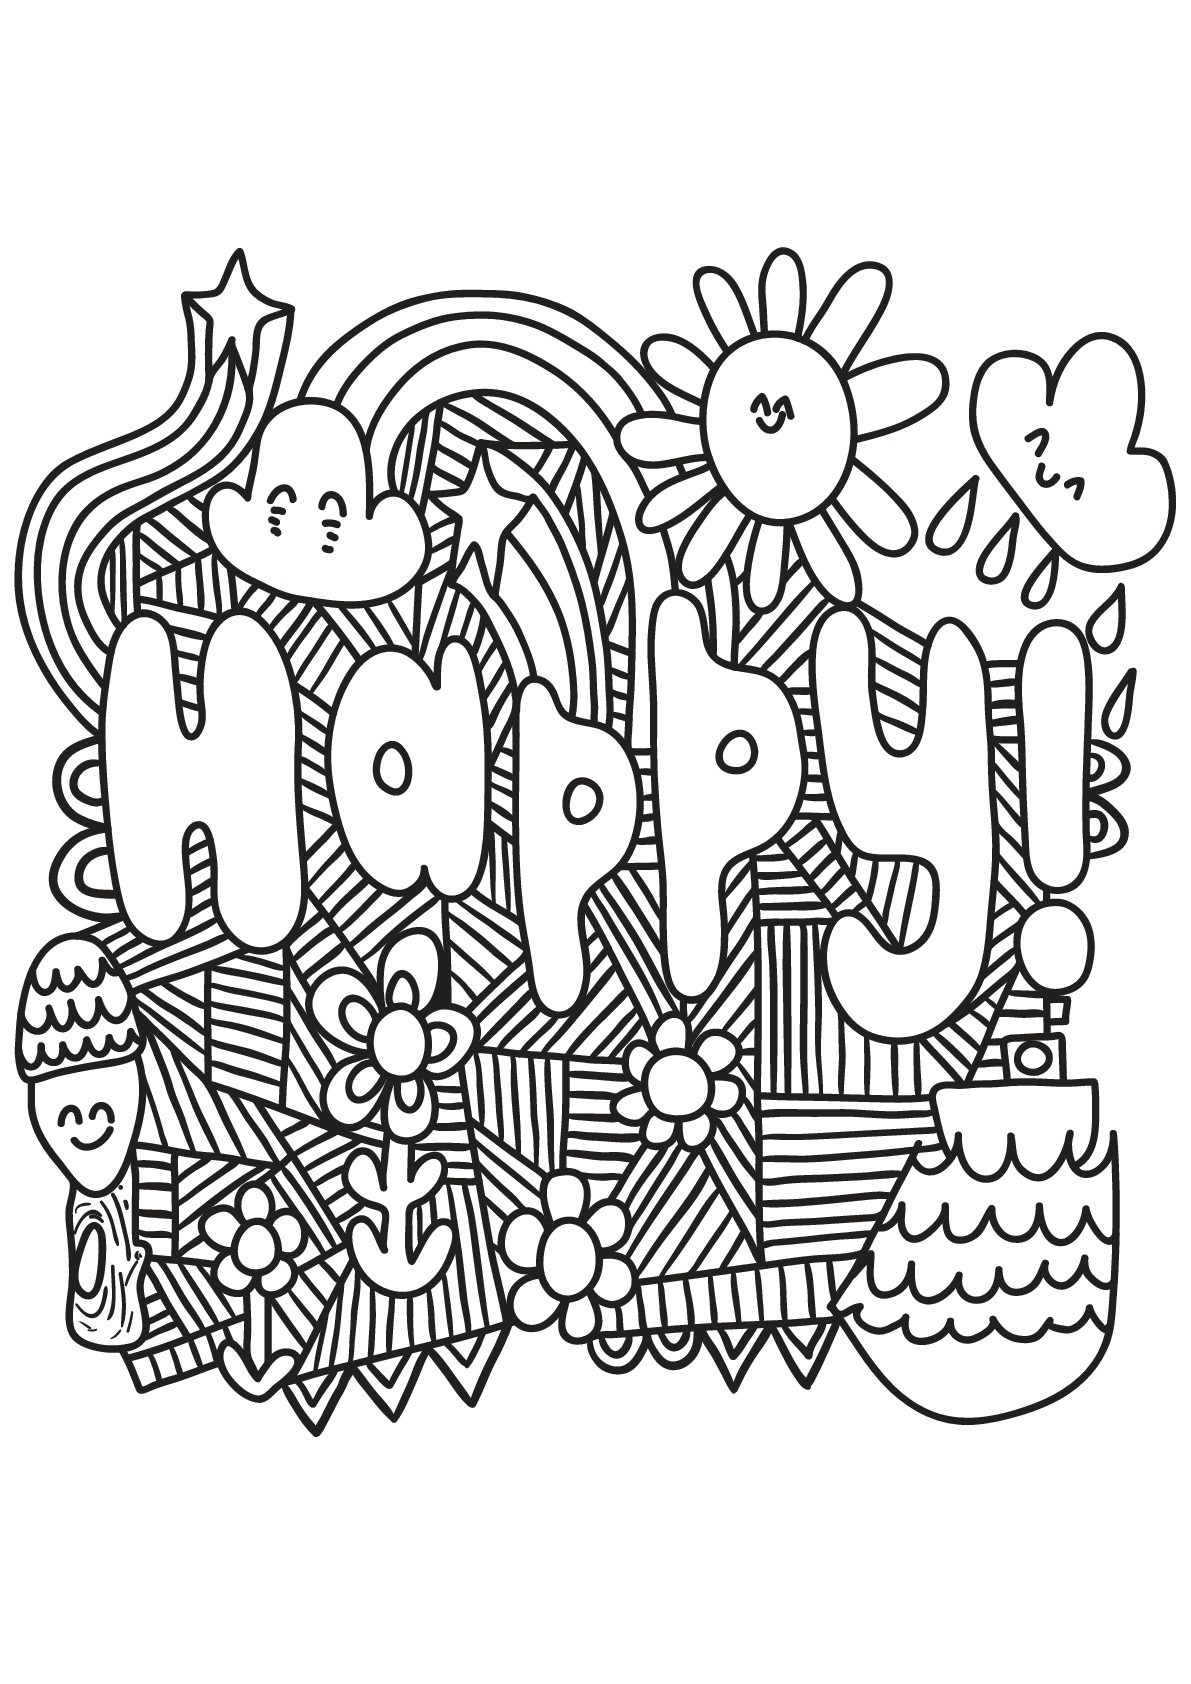 Quote Coloring Pages For Adults  Free book quote 4 Quotes Adult Coloring Pages